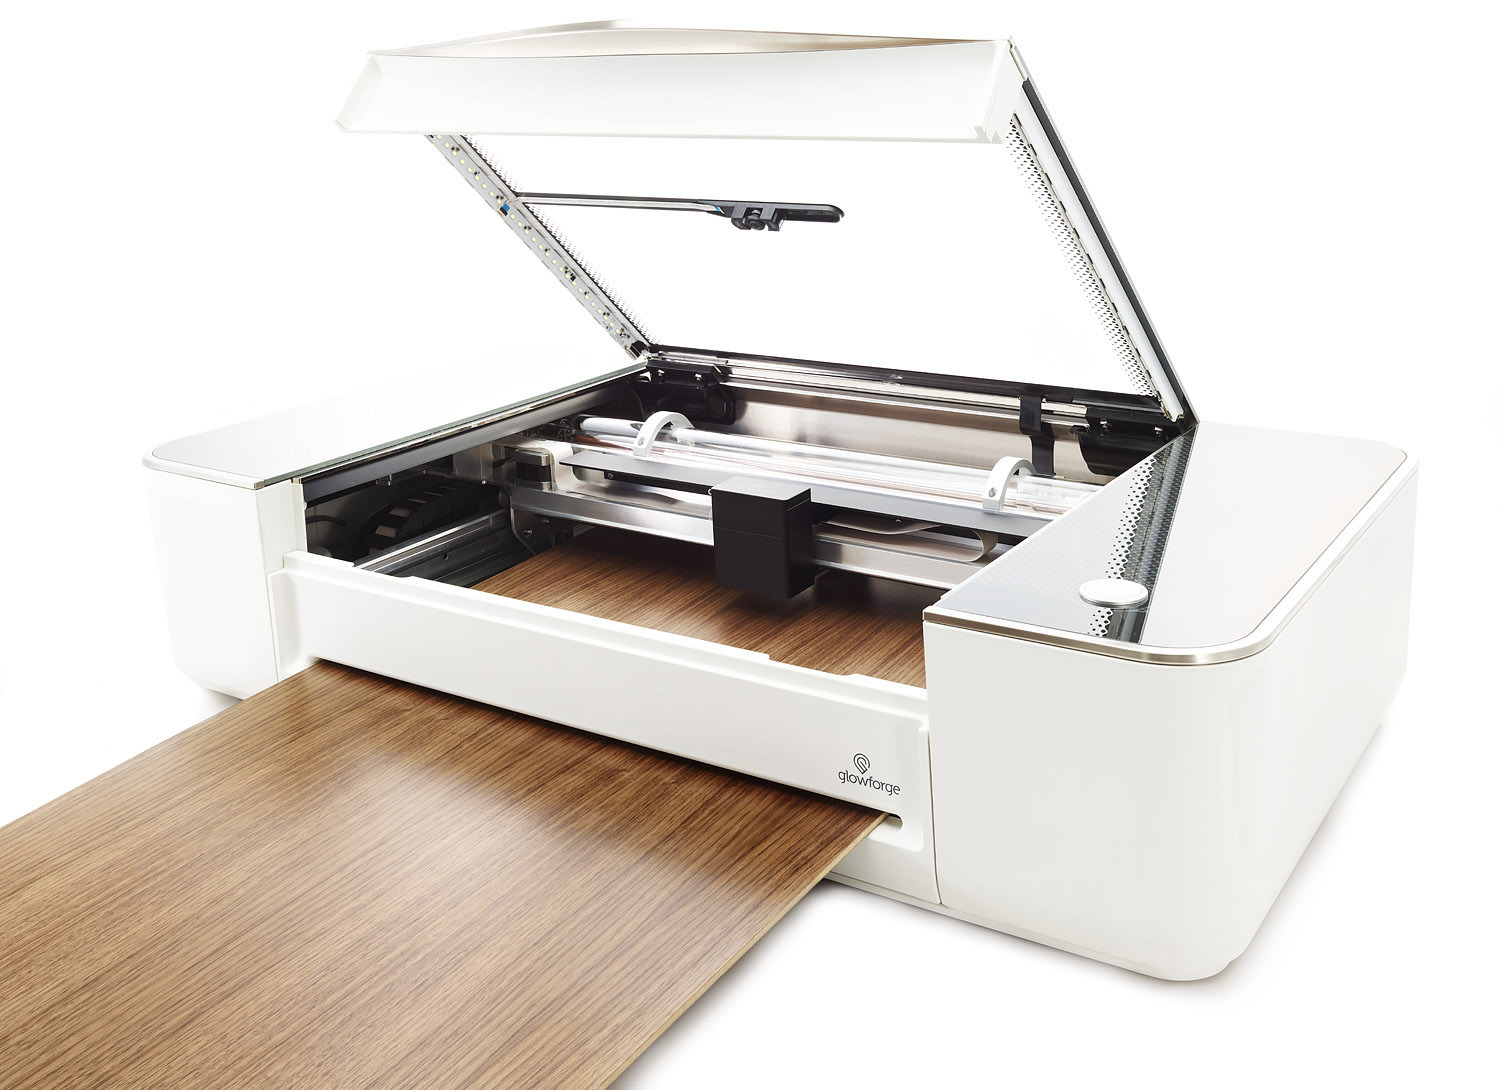 Glowforge Launches The 3d Laser Printer That Made